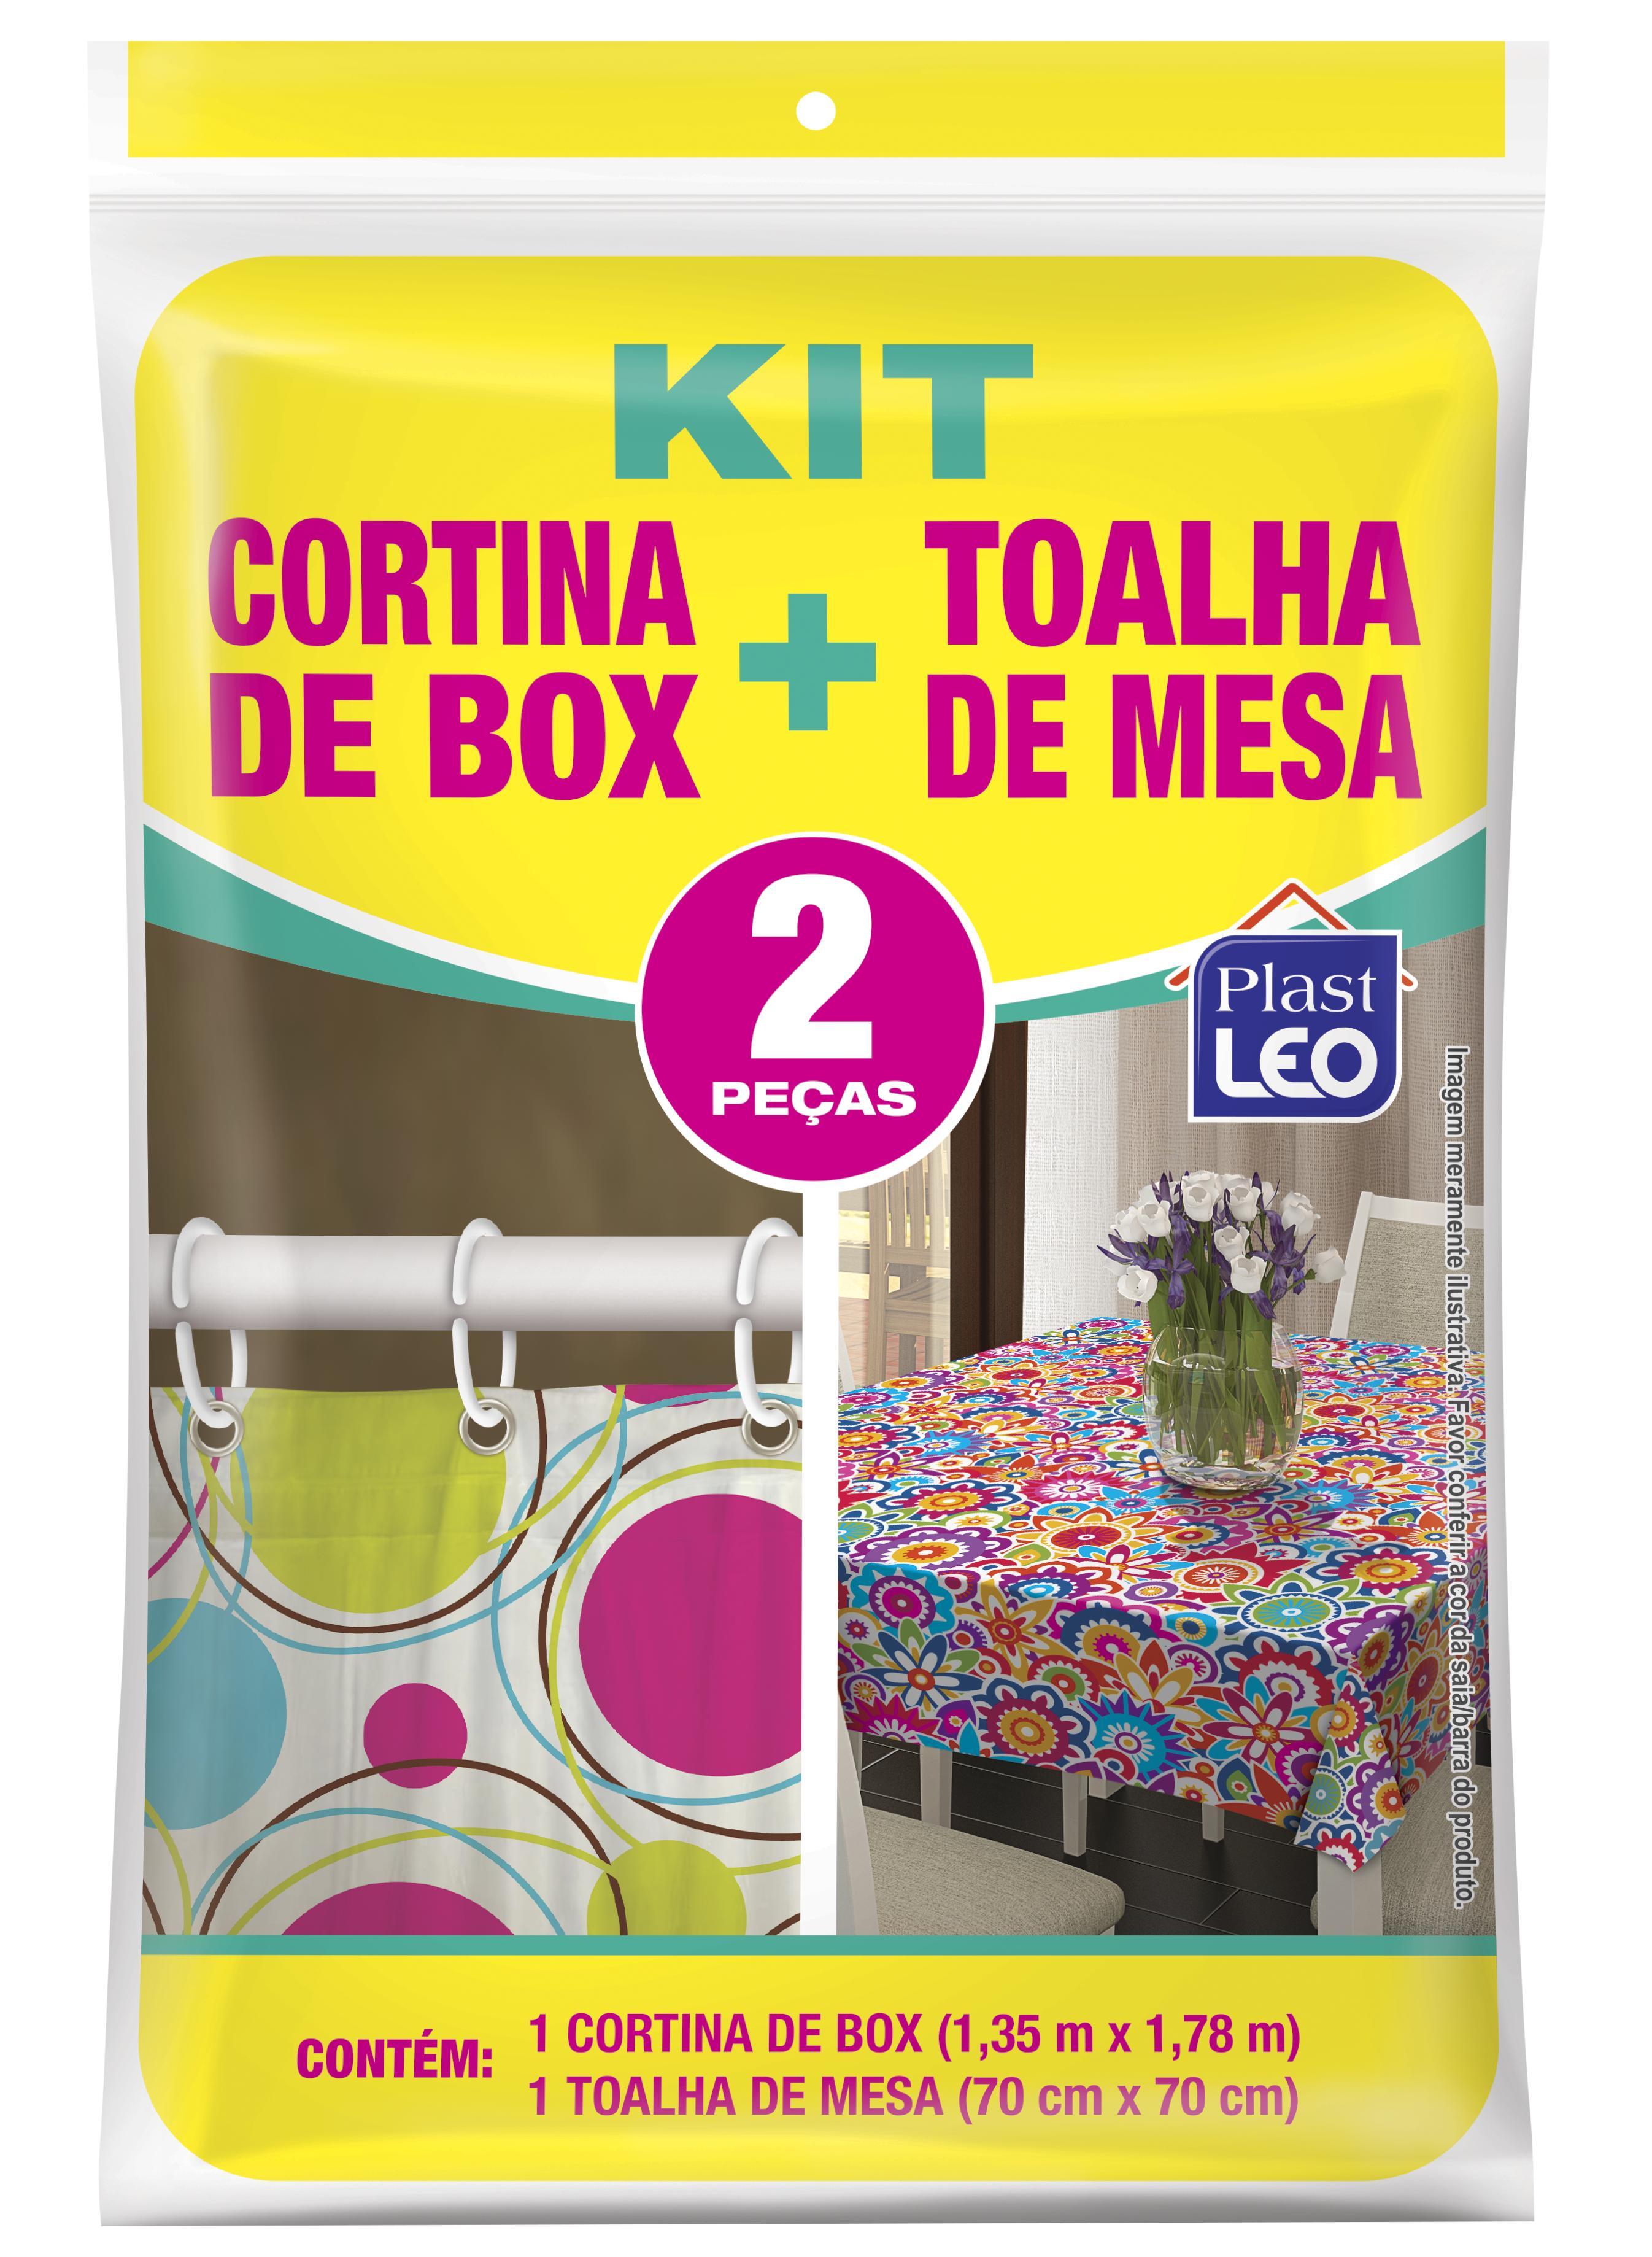 KIT CORTINA BOX